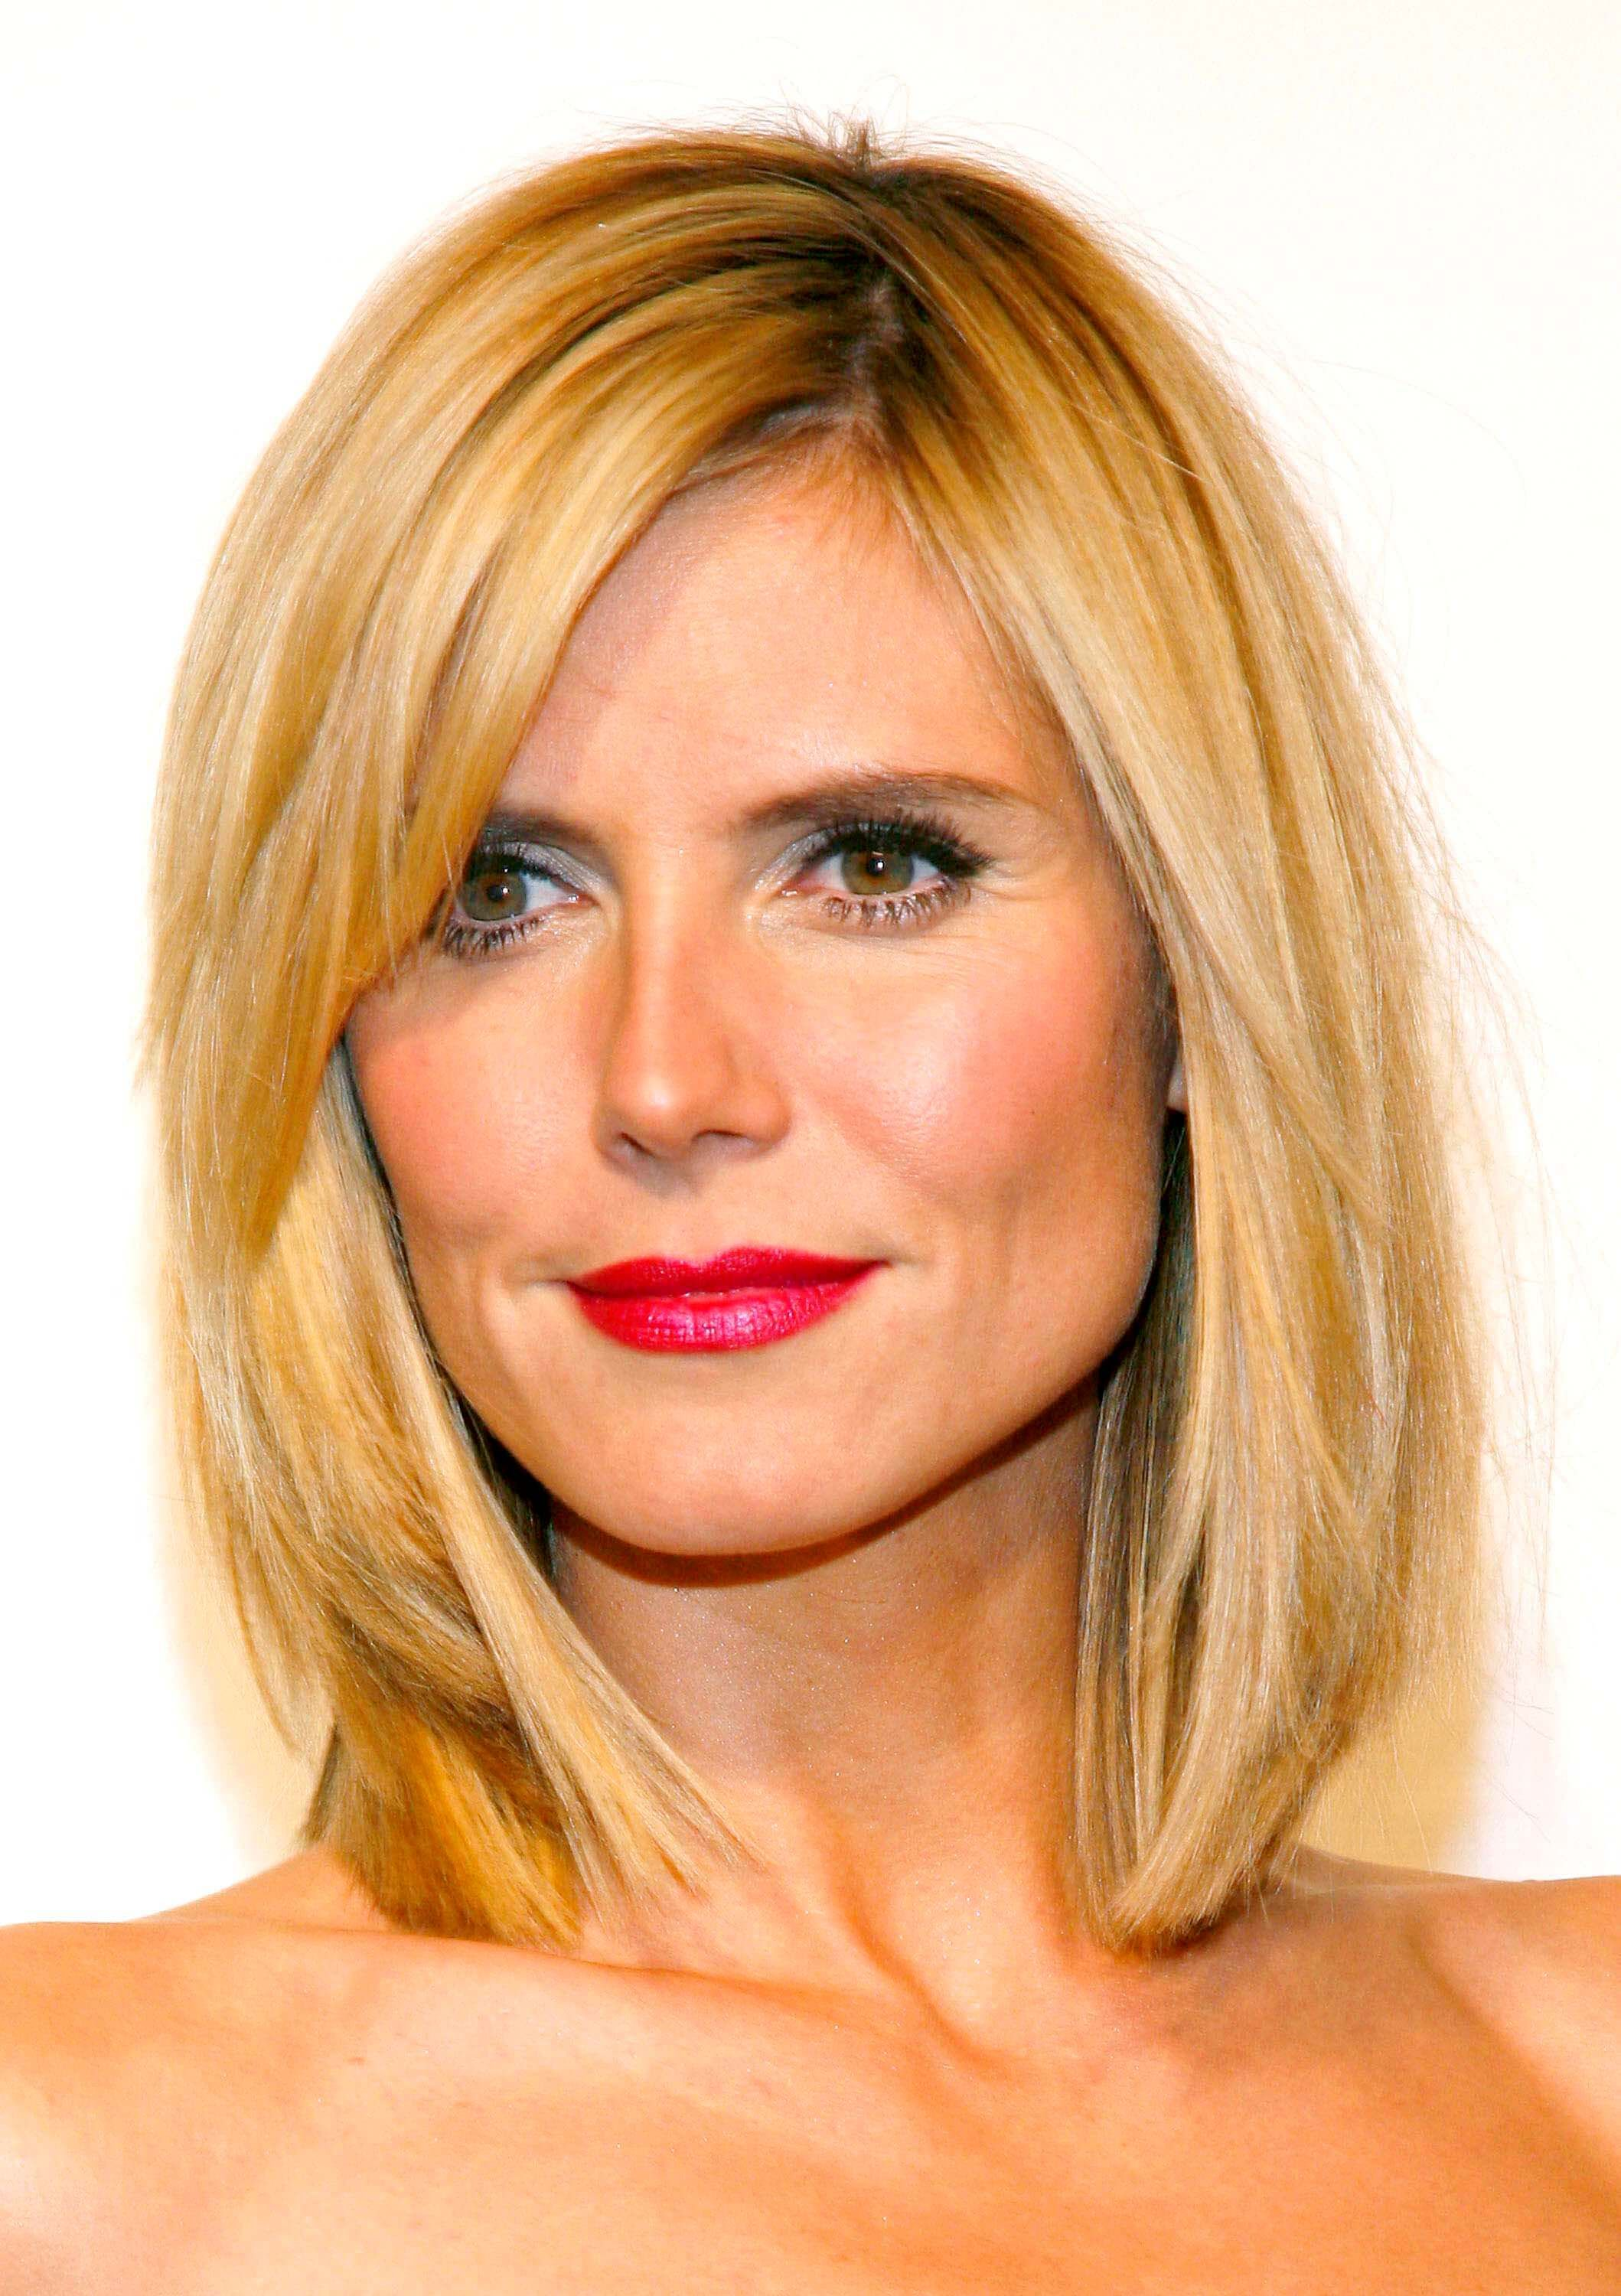 layered bob hairstyle for square faces heidi klum | hairstyles to